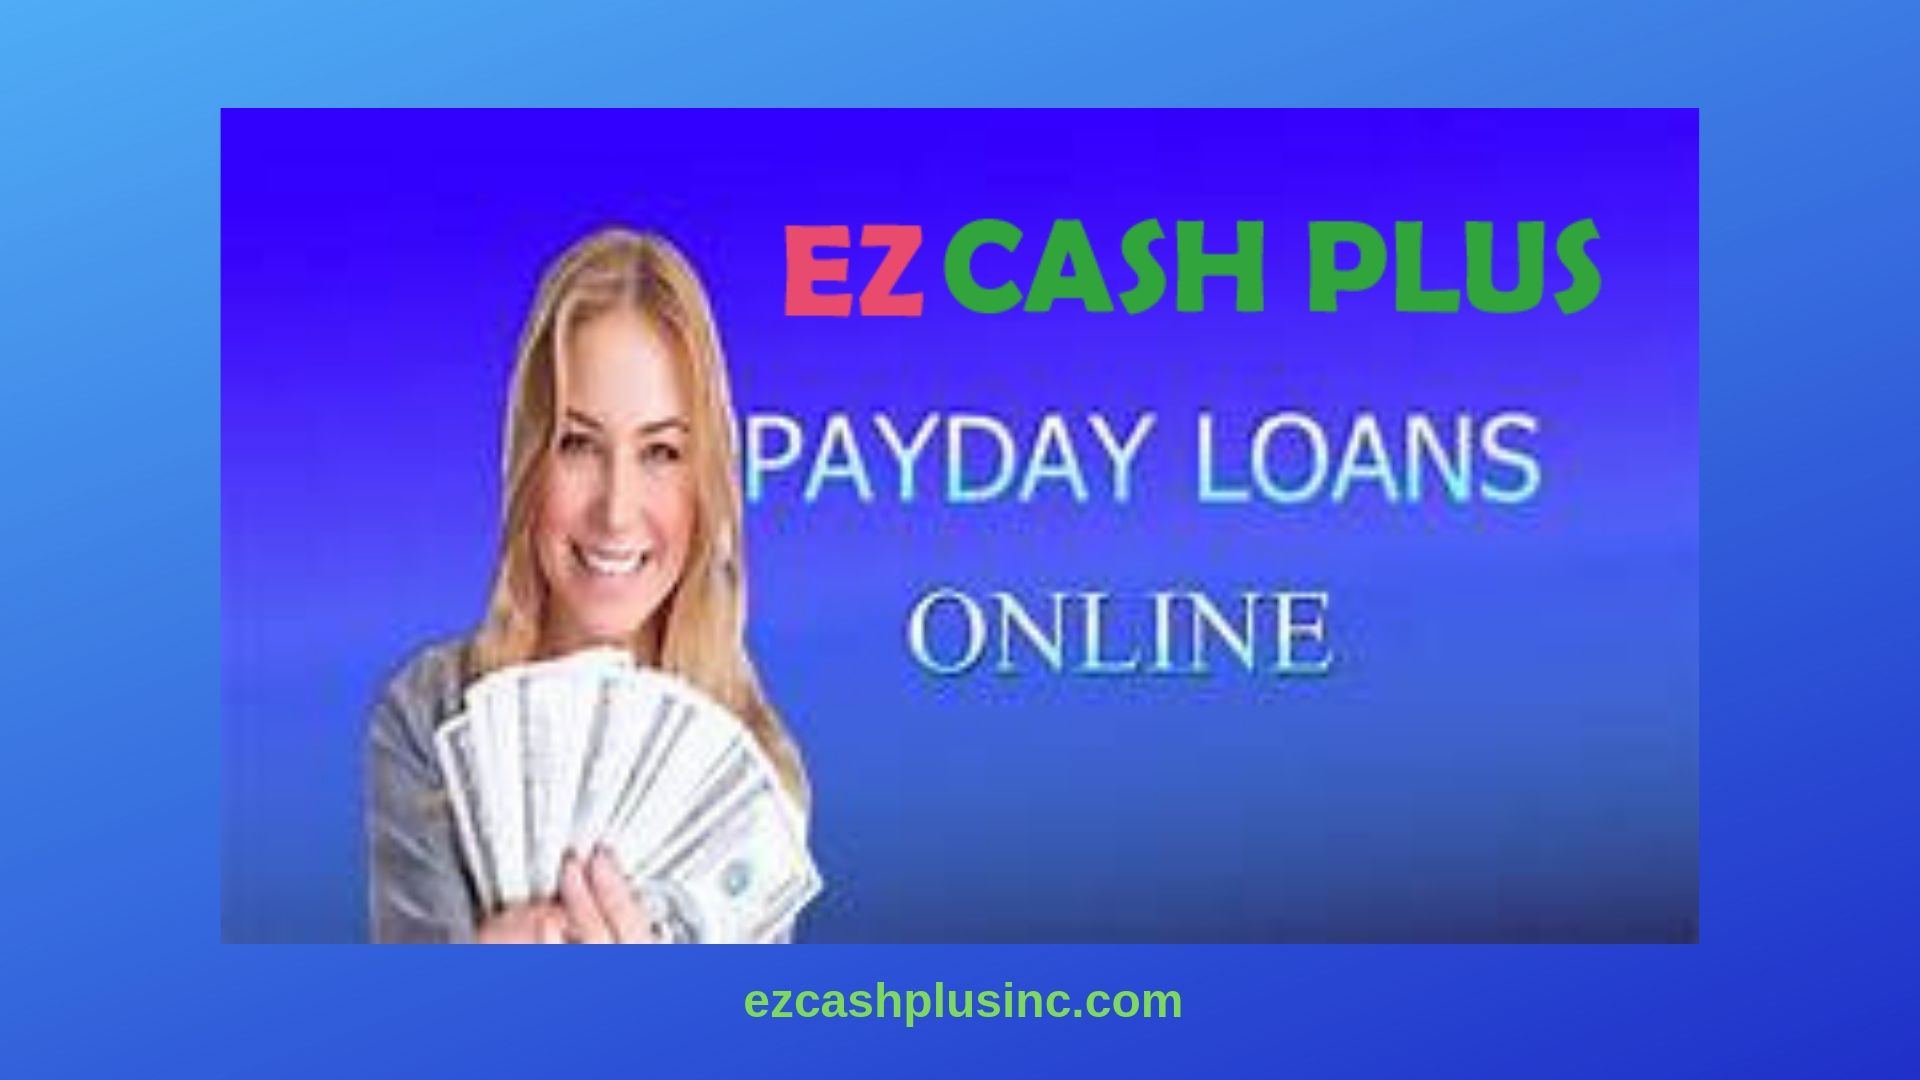 Ezcashplusinc In Vacaville Find The Closest Financial Branch To You In The Vacaville Ca Area Get Branch Details And Ap Cash Loans Payday Loans Online Payday